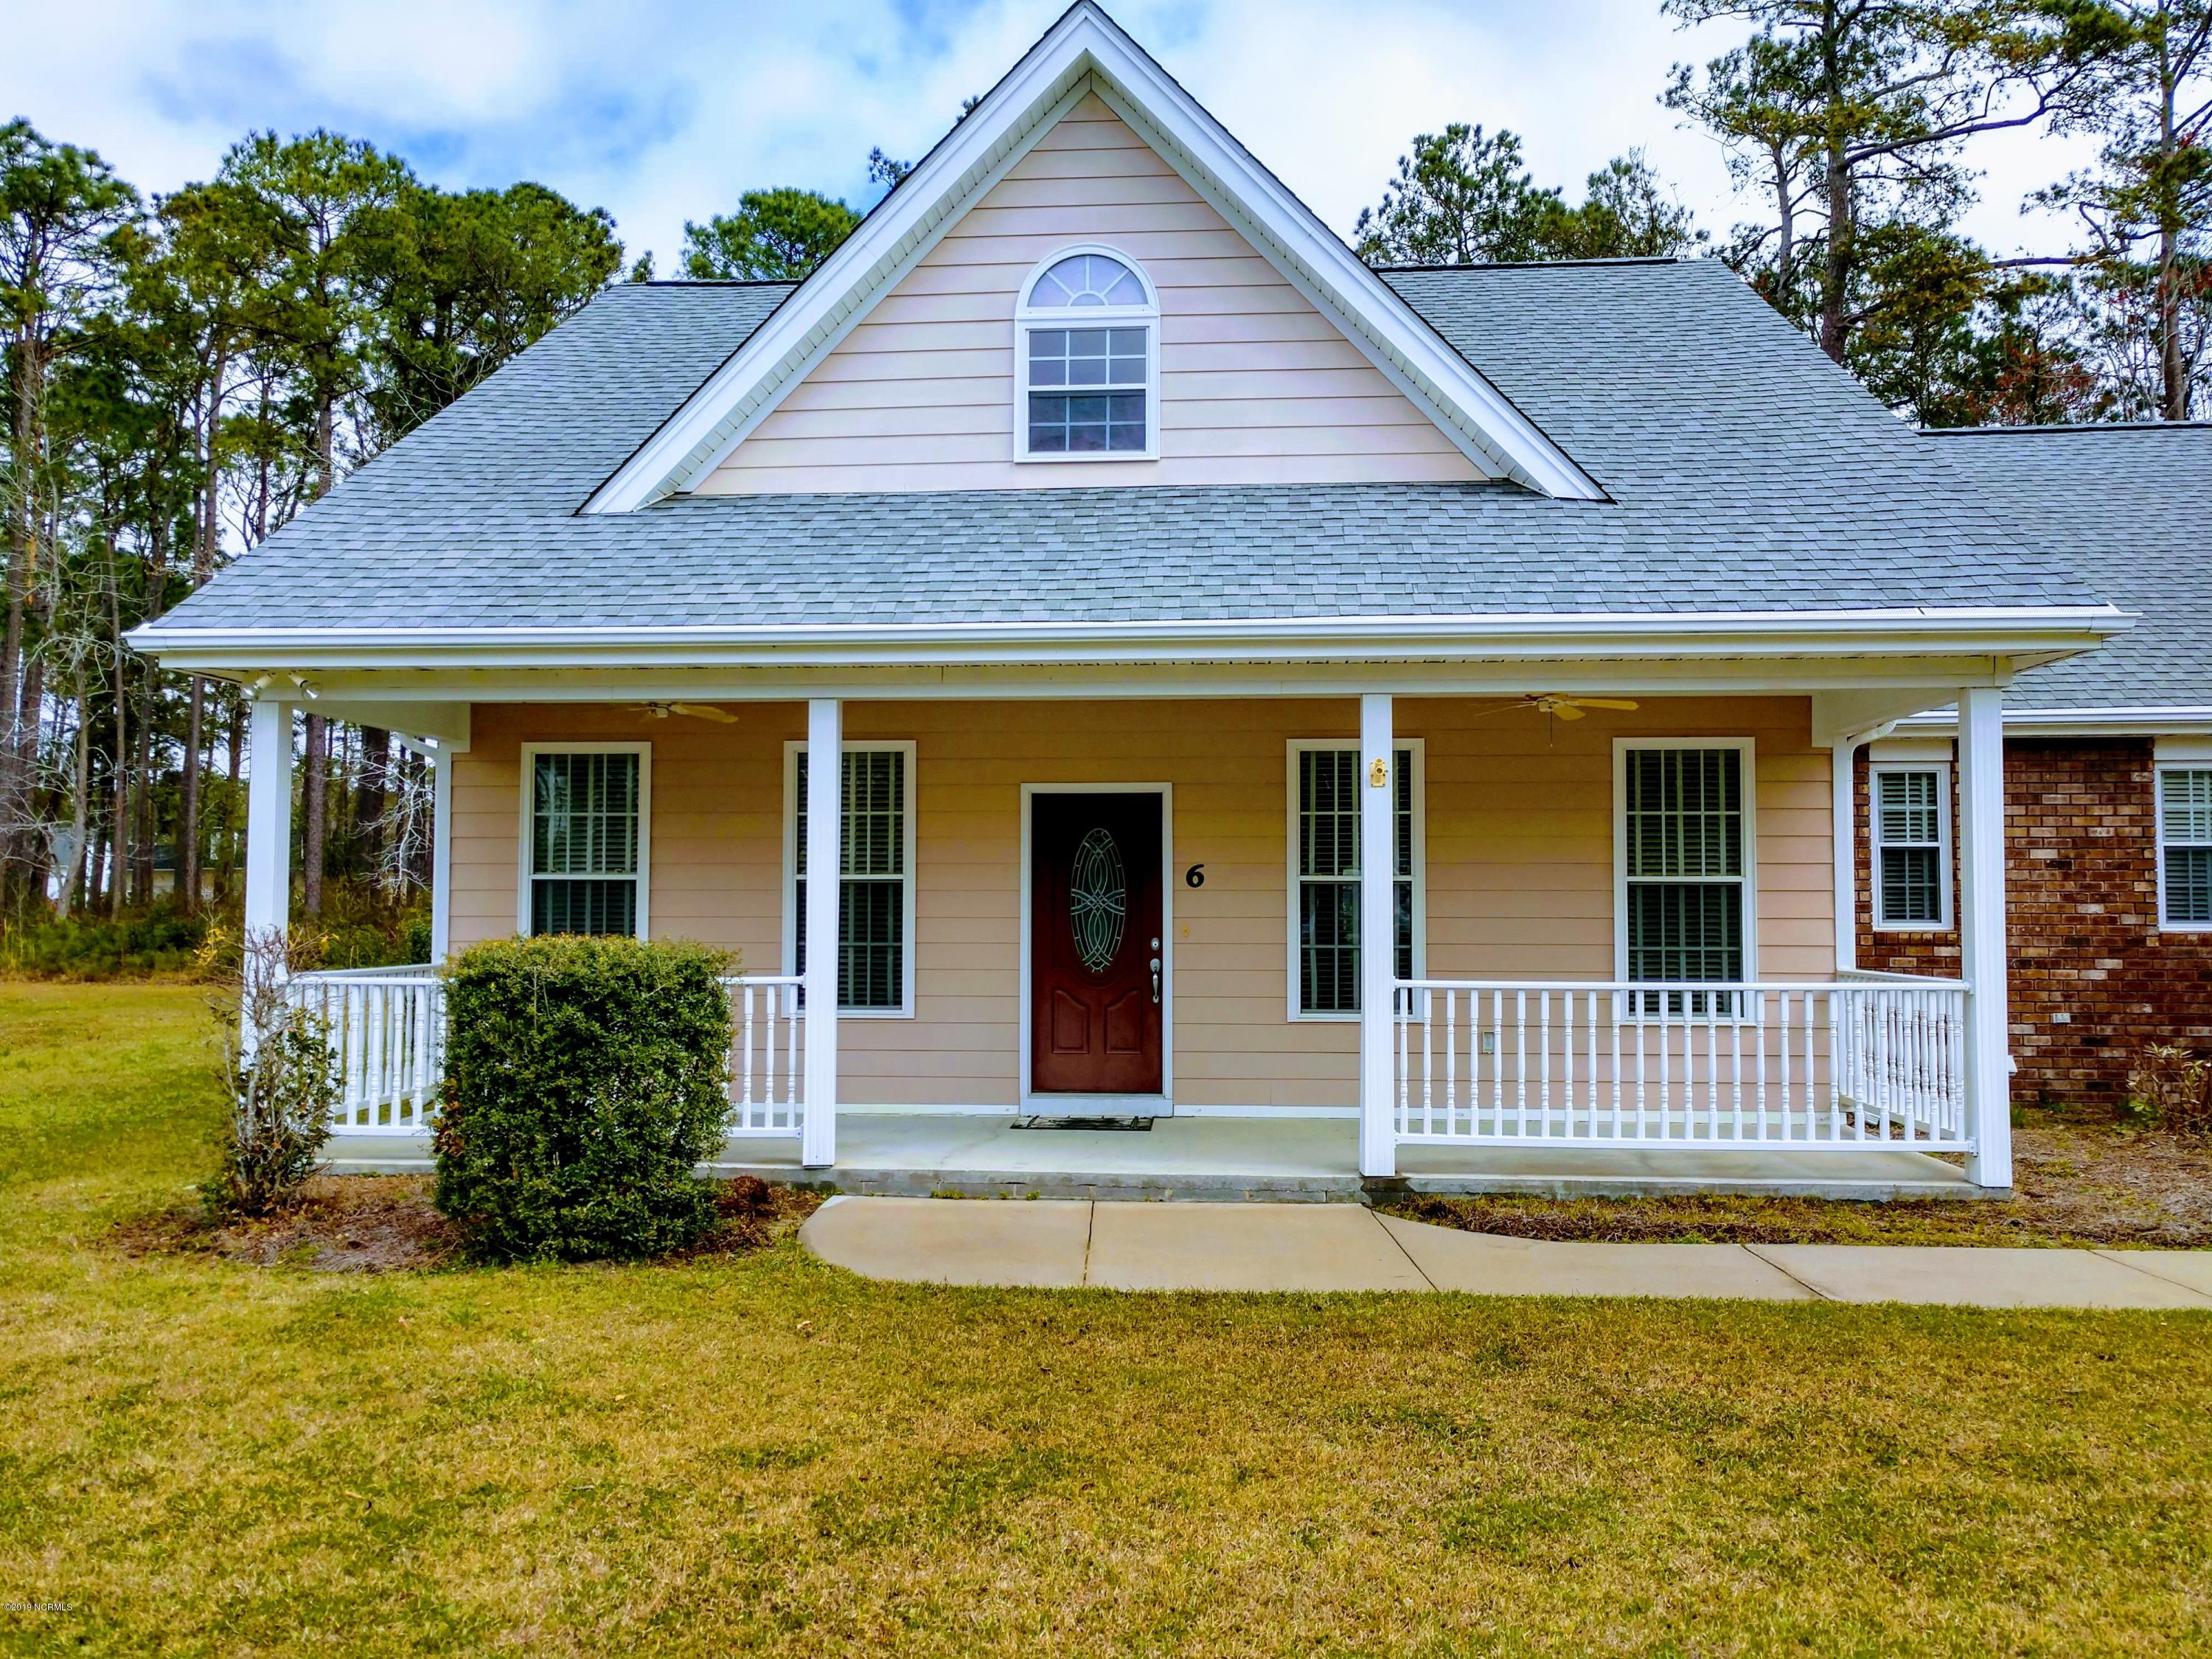 6 Snead Court Shallotte, NC 28470